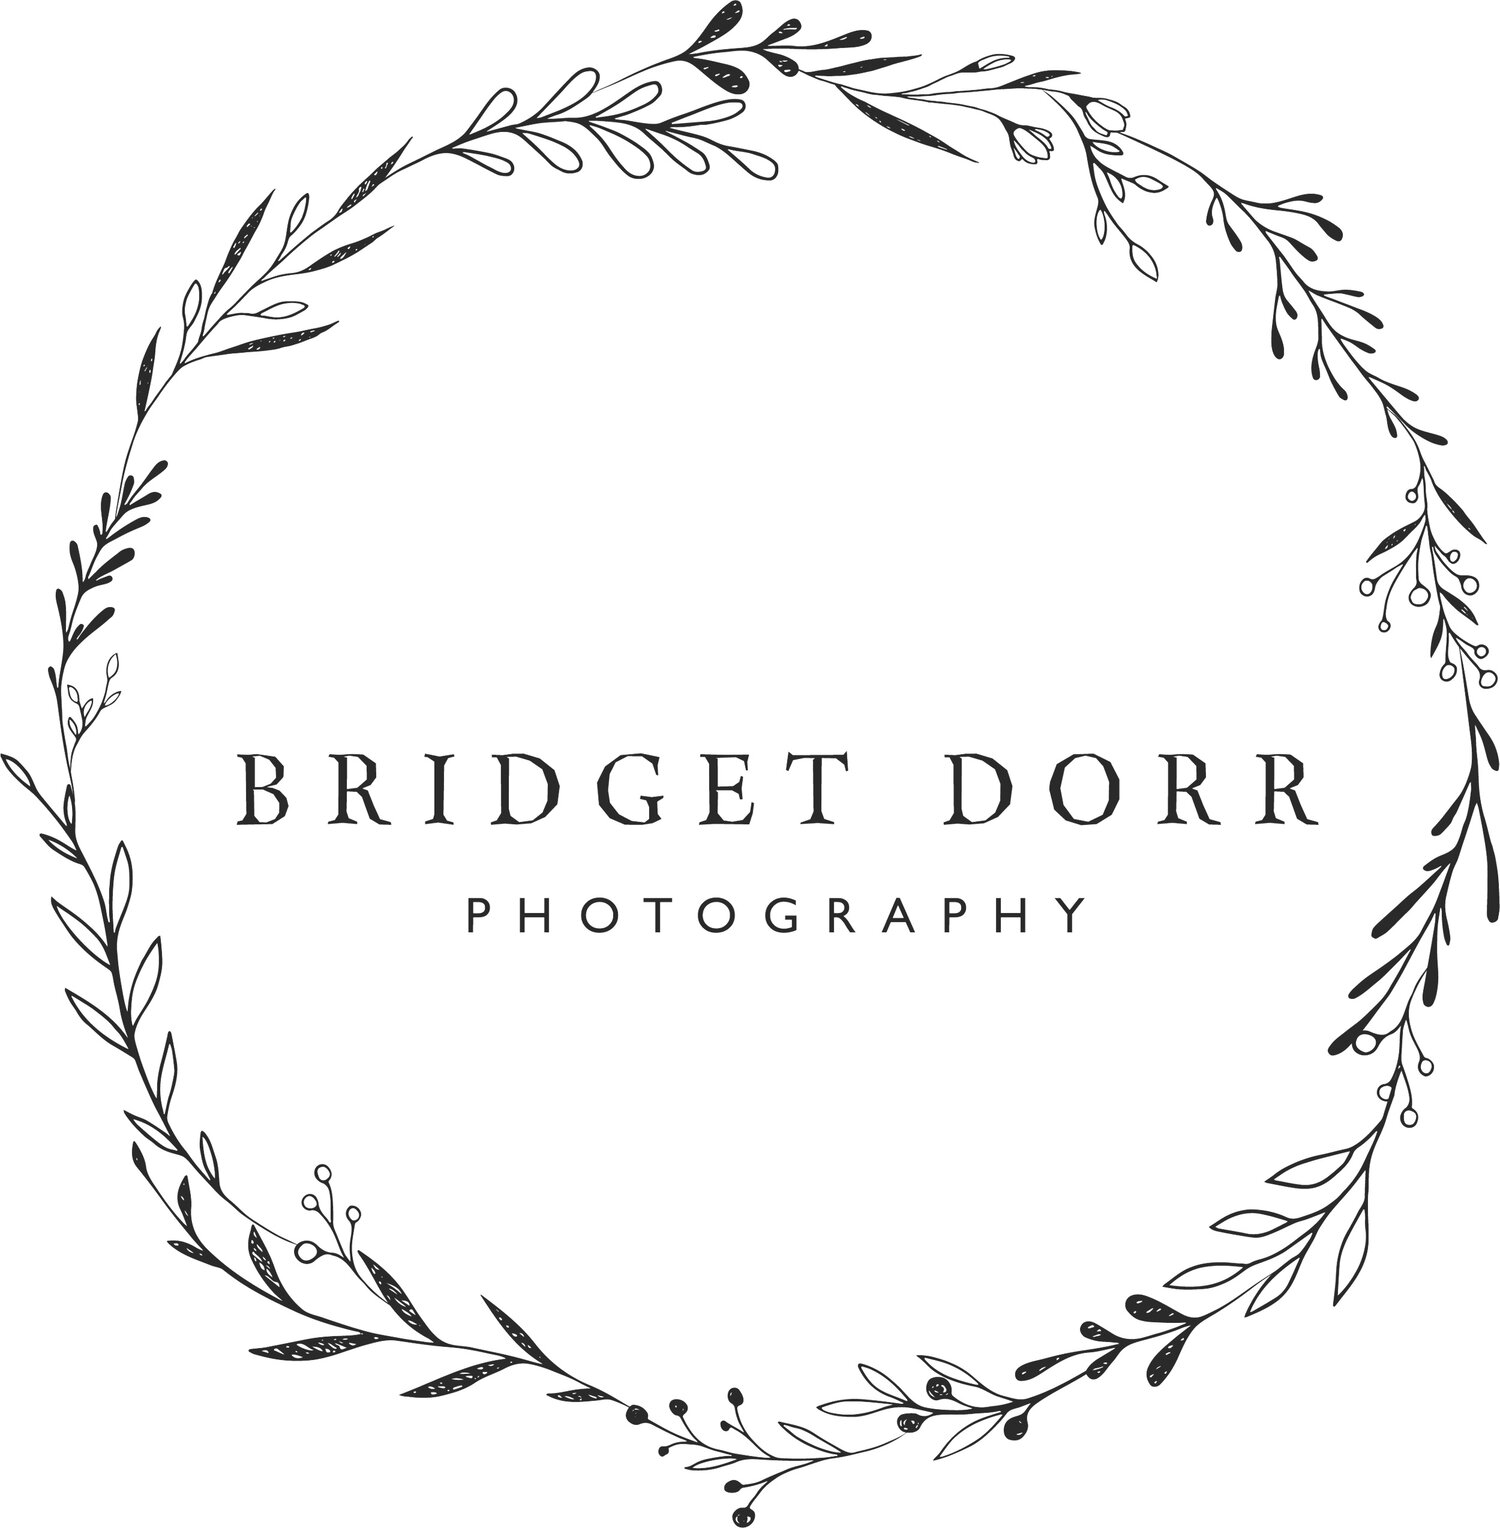 Bridget Dorr Photography